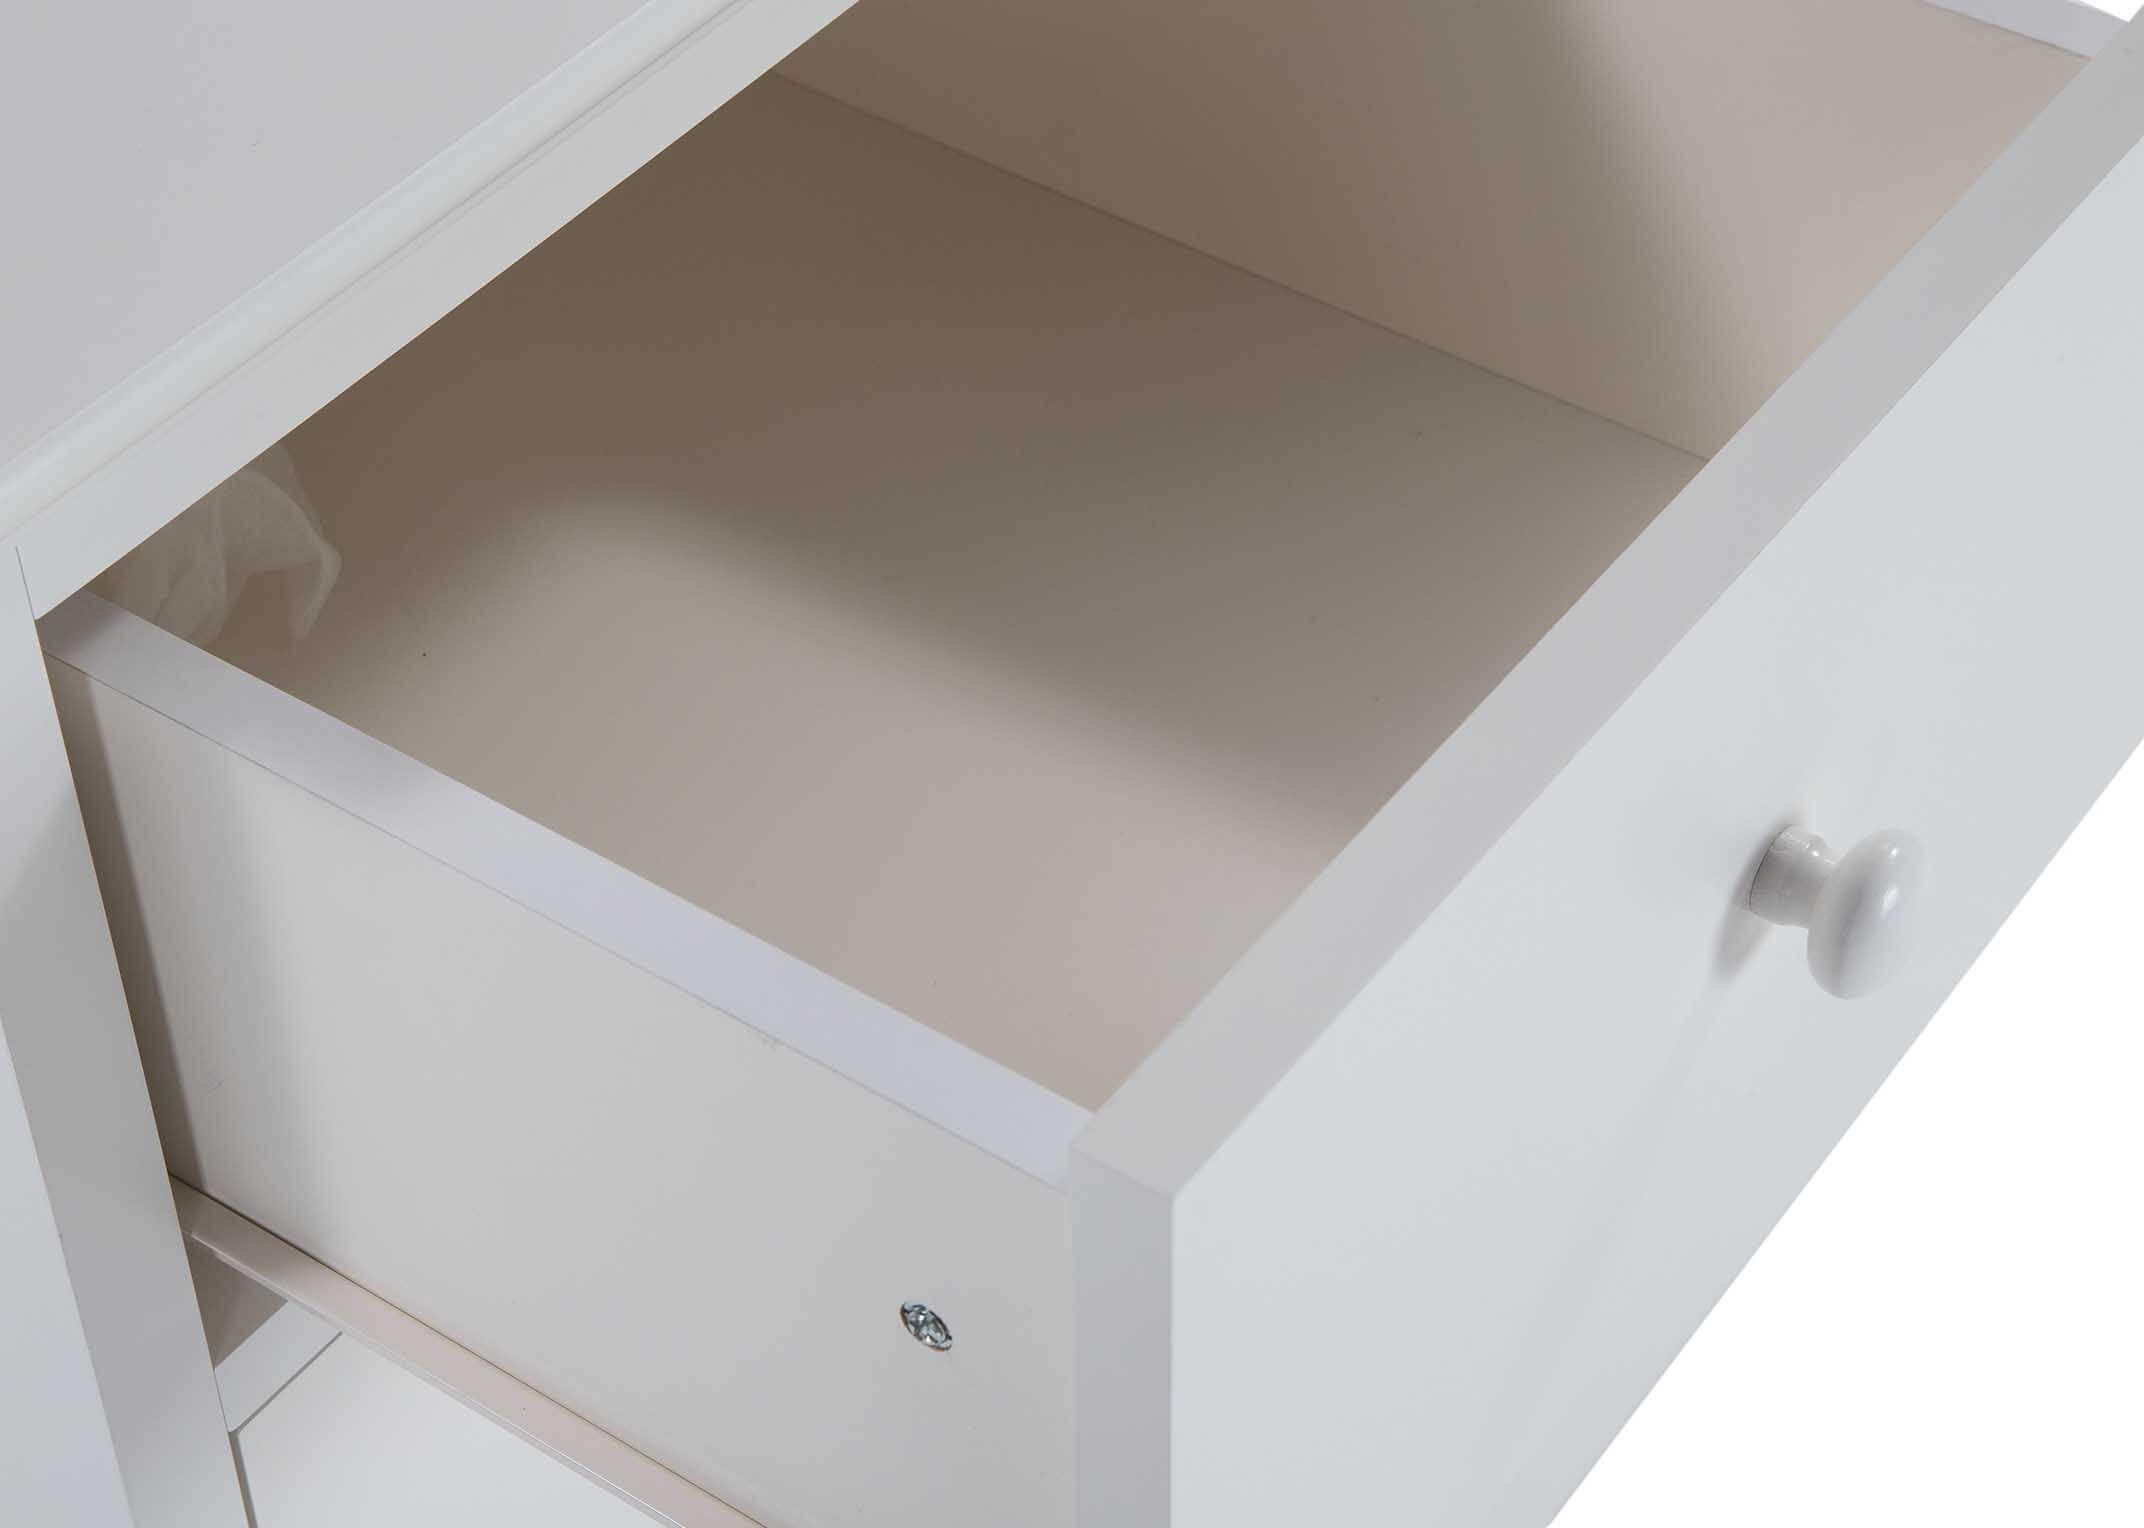 ASHLEY (GREY or WHITE) SMALL CHEST - DRAWER RUNNER DETAIL